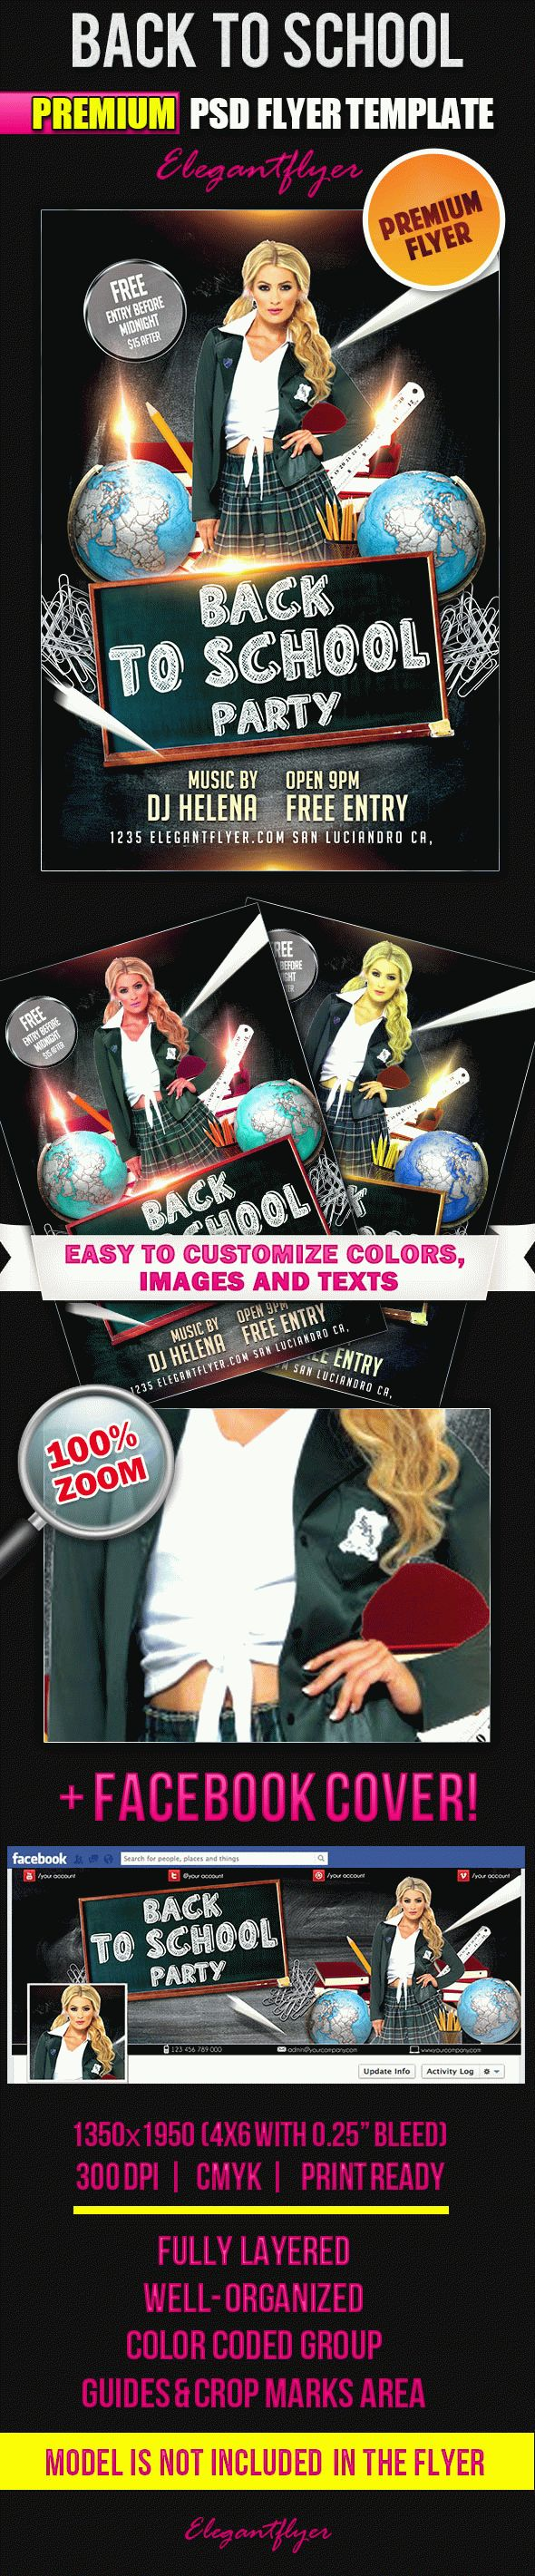 Back to School Party PSD Flyer